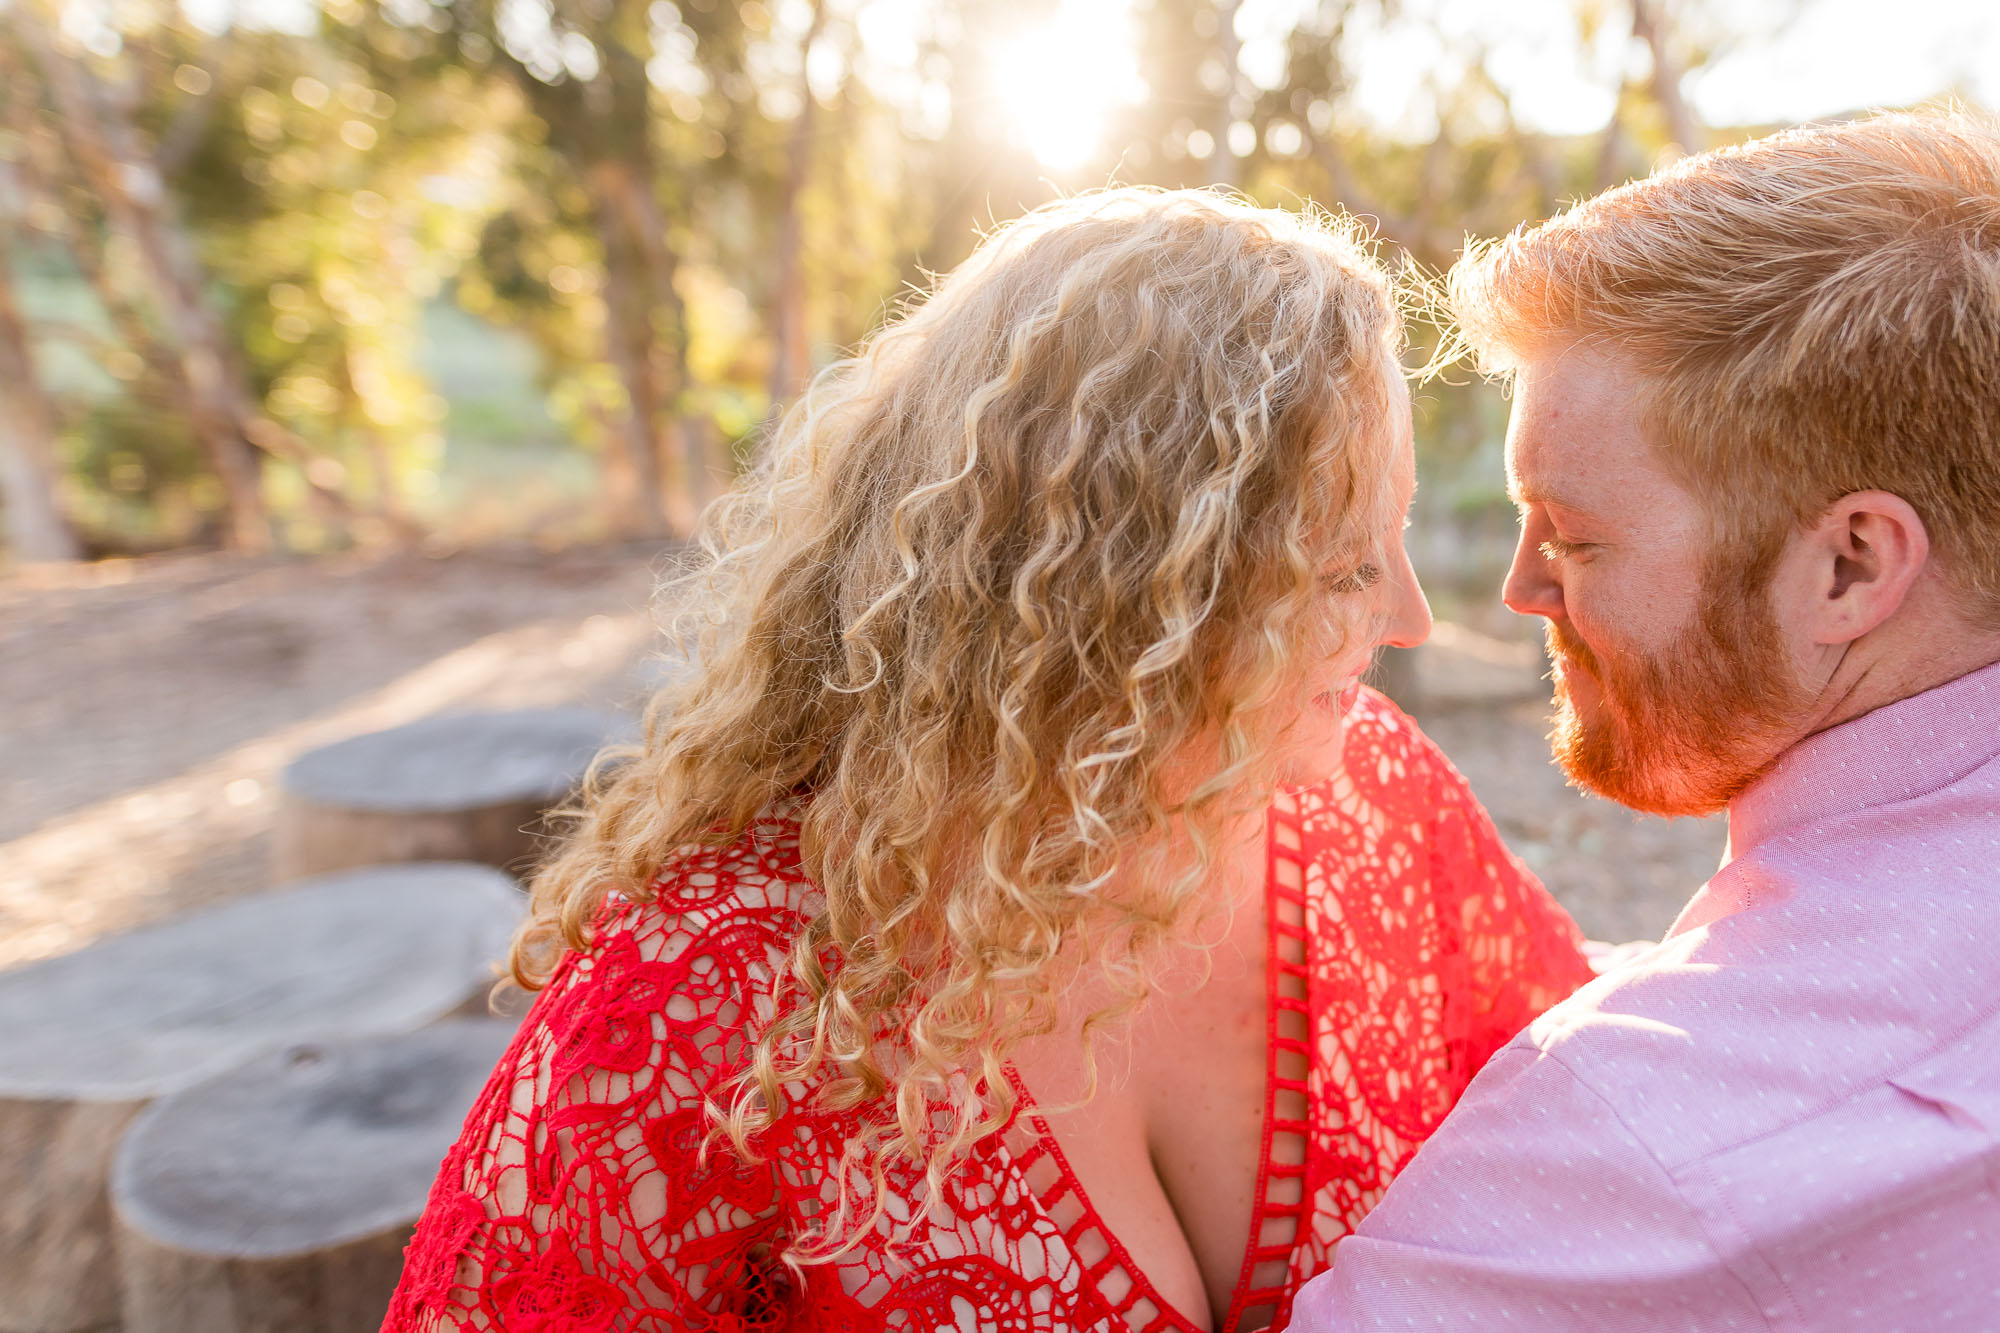 Tierney_Gregory_Batiquitos_Lagoon_Engagement_Session_089.jpg